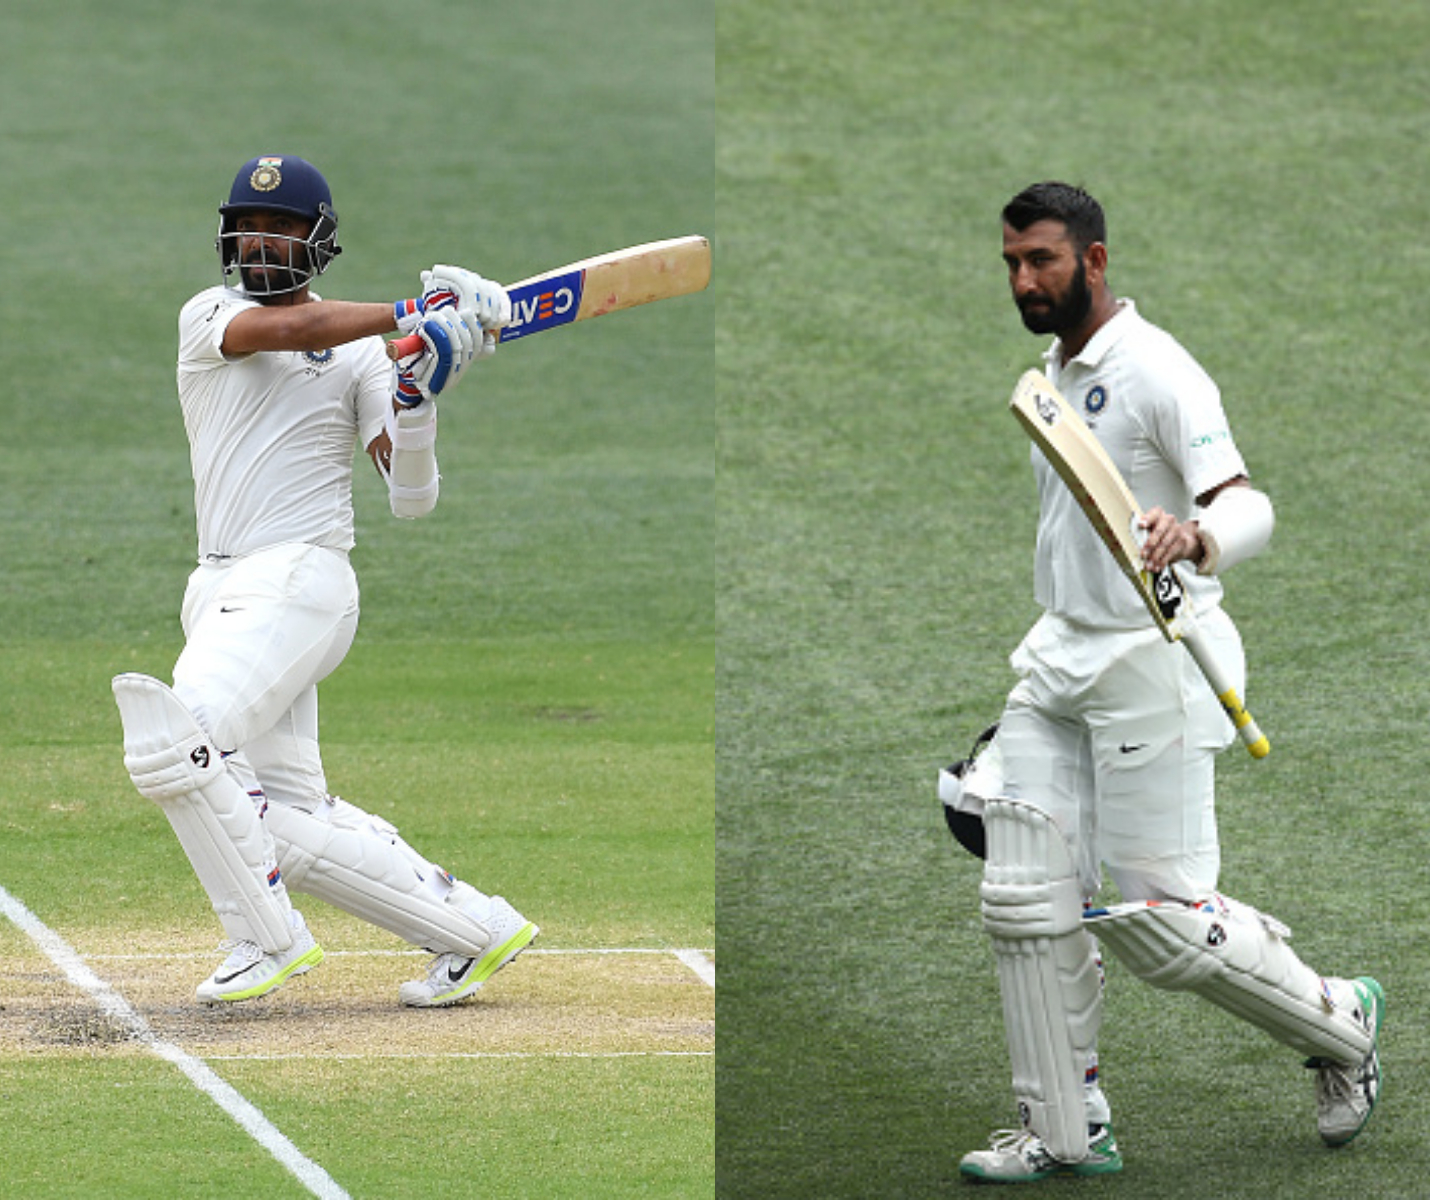 Pujara (71) and Rahane (70) helped India put up a target of 323 runs for Australia to chase | Getty